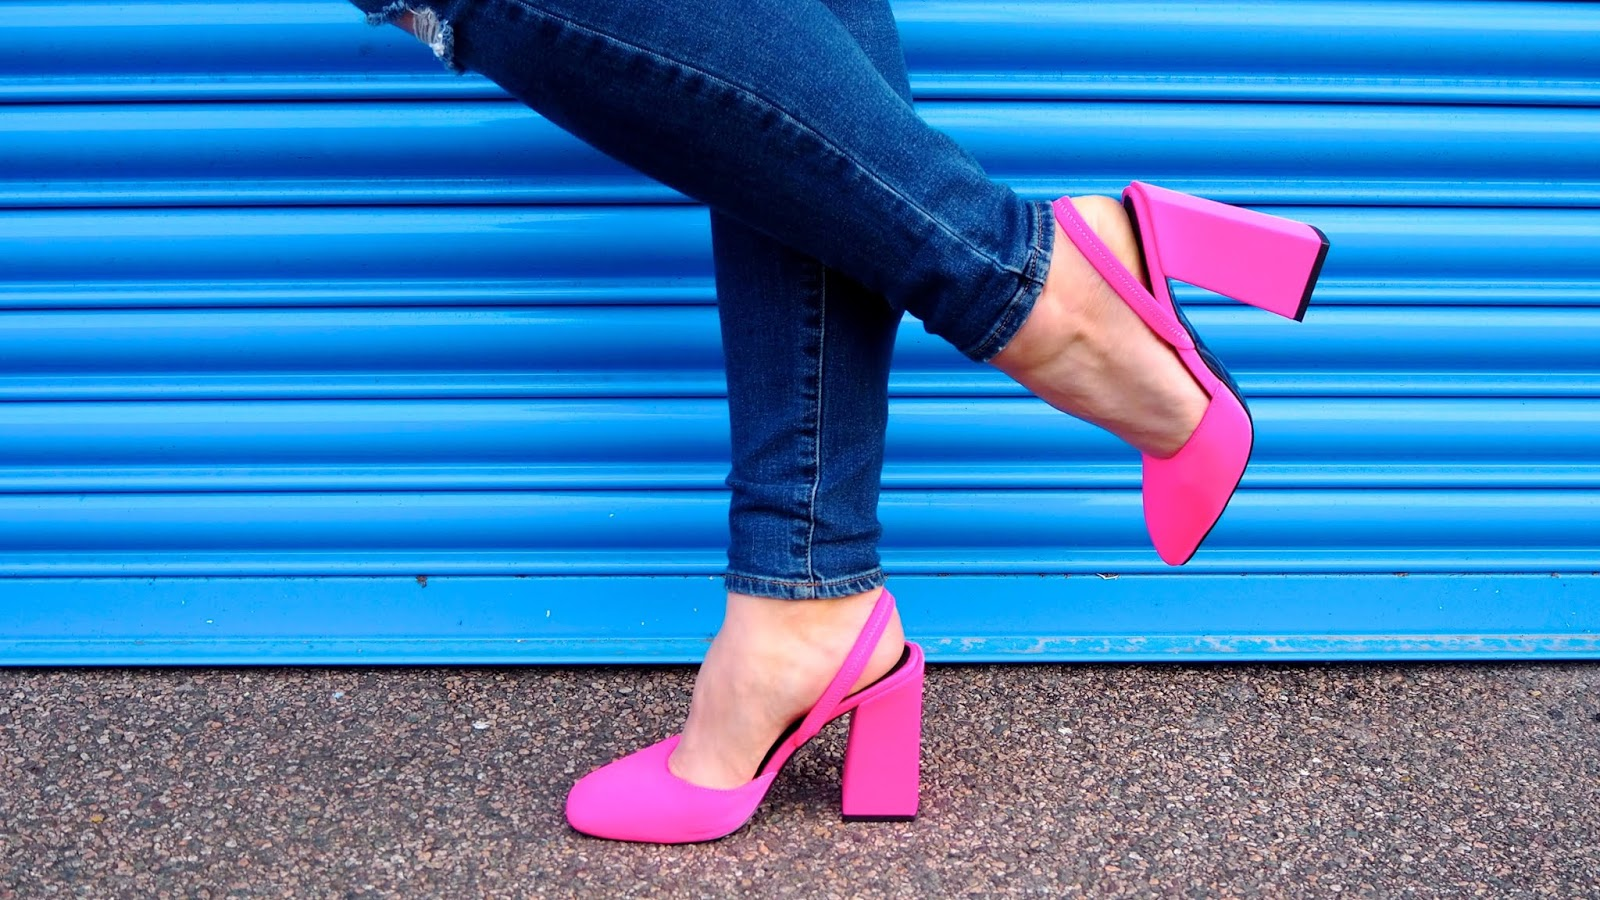 ASOS Design Neon Pink Block Heeled Slingback shoes with jeans in front of a blue wall